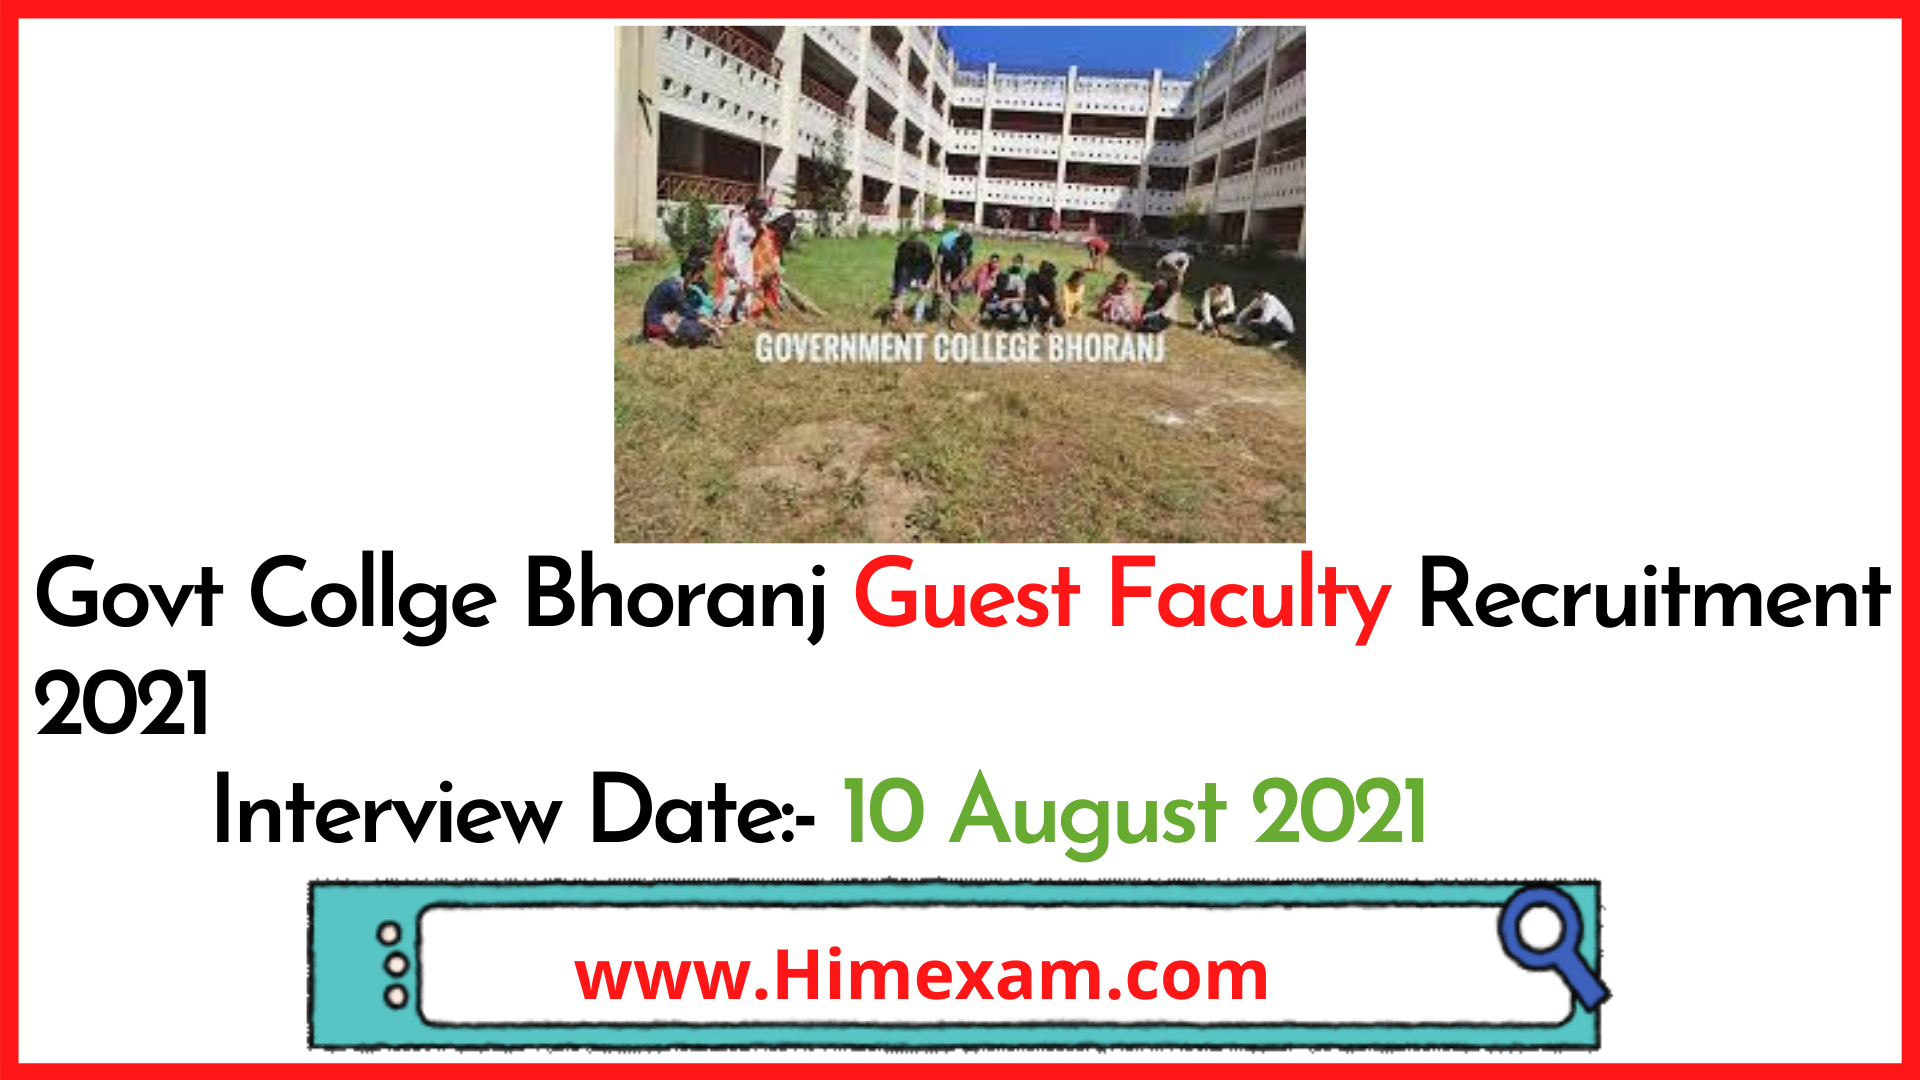 Govt Collge Bhoranj Guest Faculty Recruitment 2021